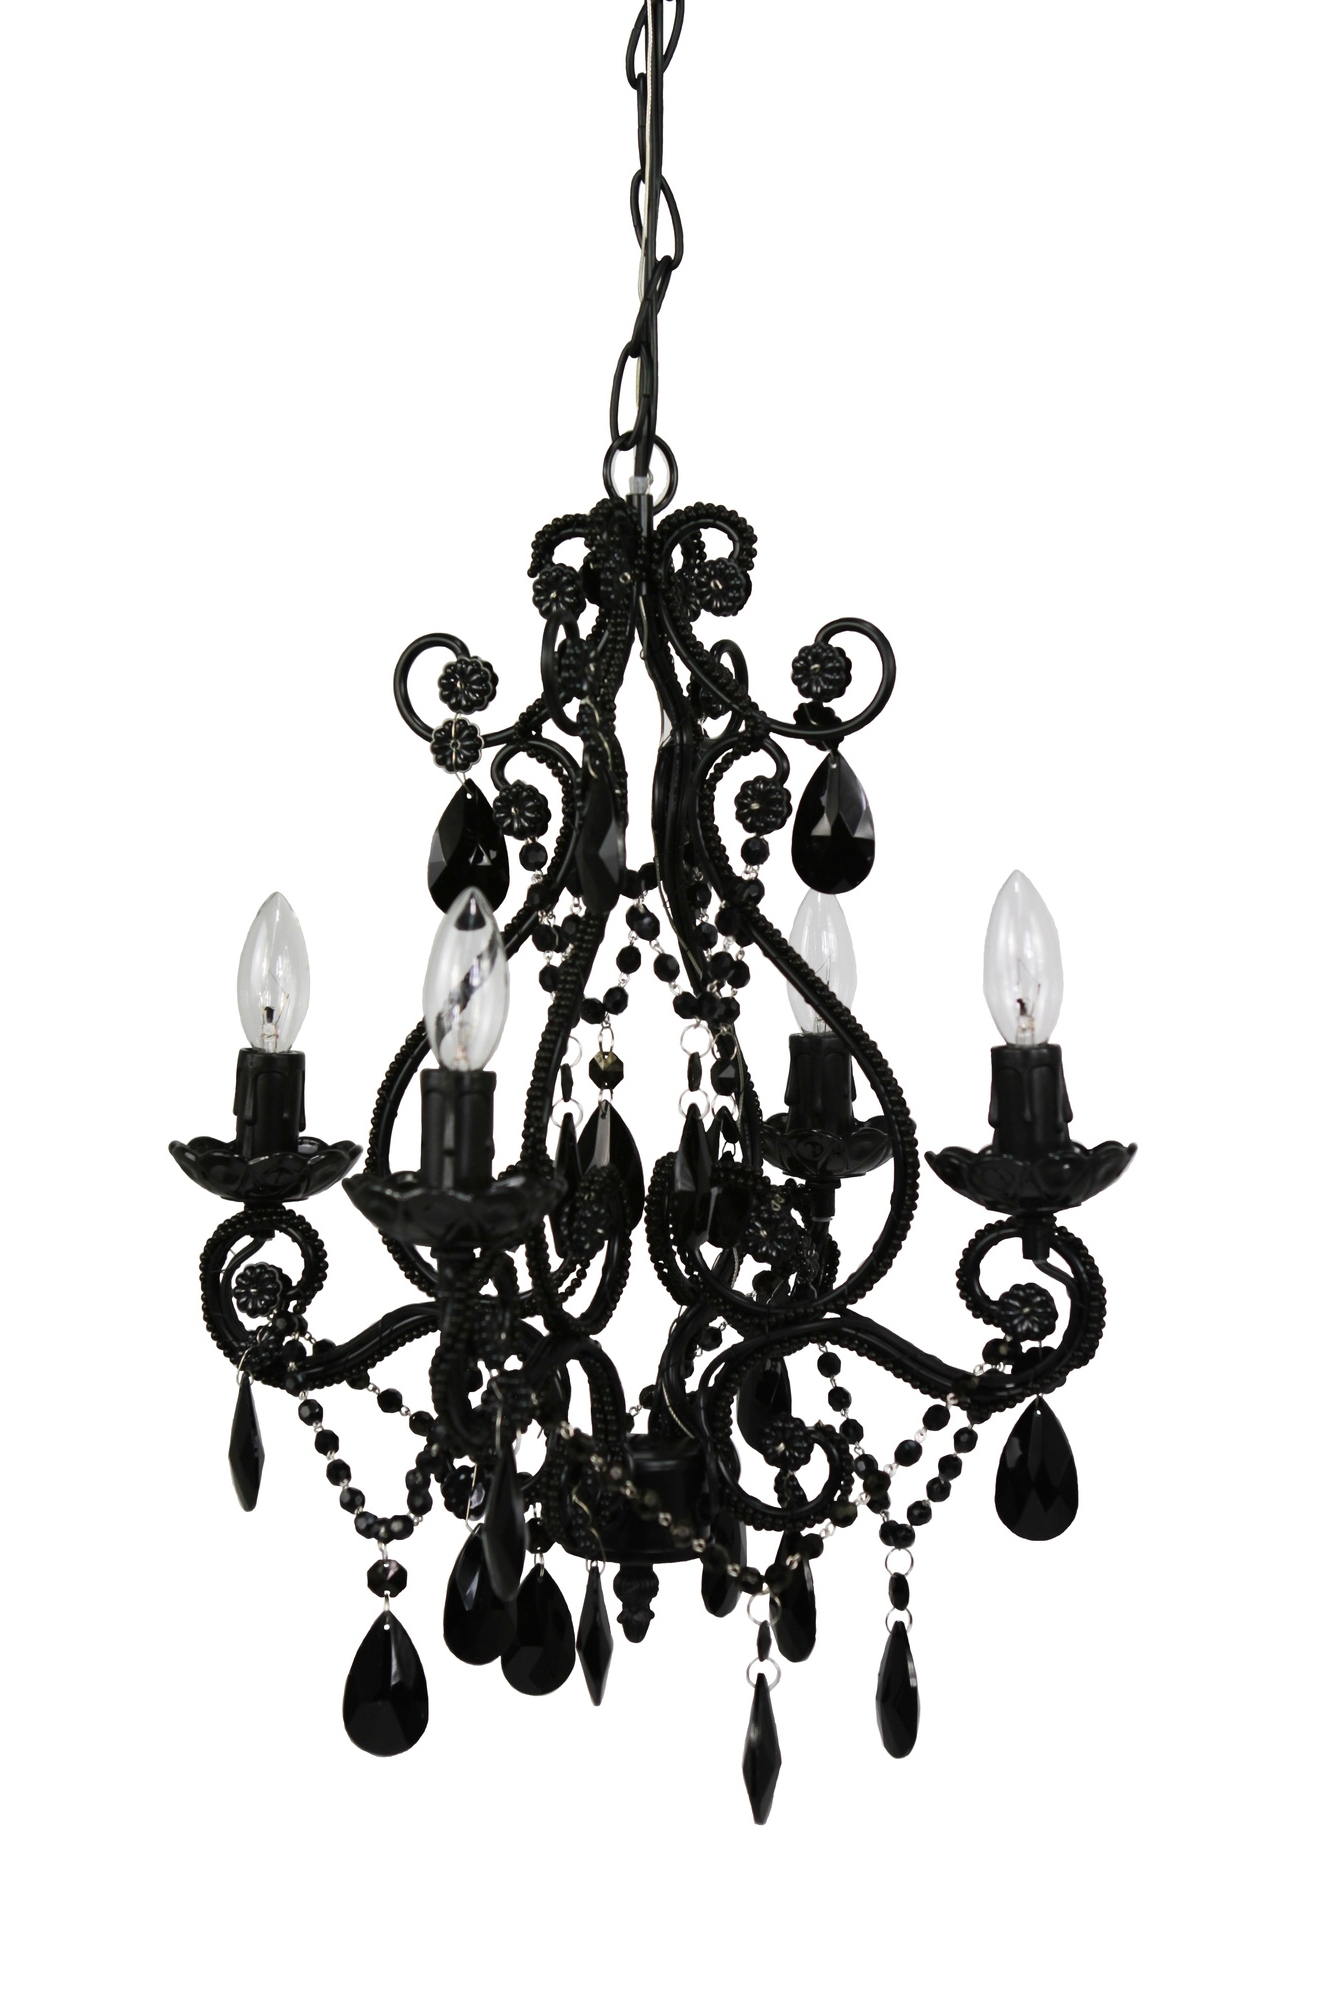 Cheap Chandelier, Chandeliers And Modern (View 8 of 15)